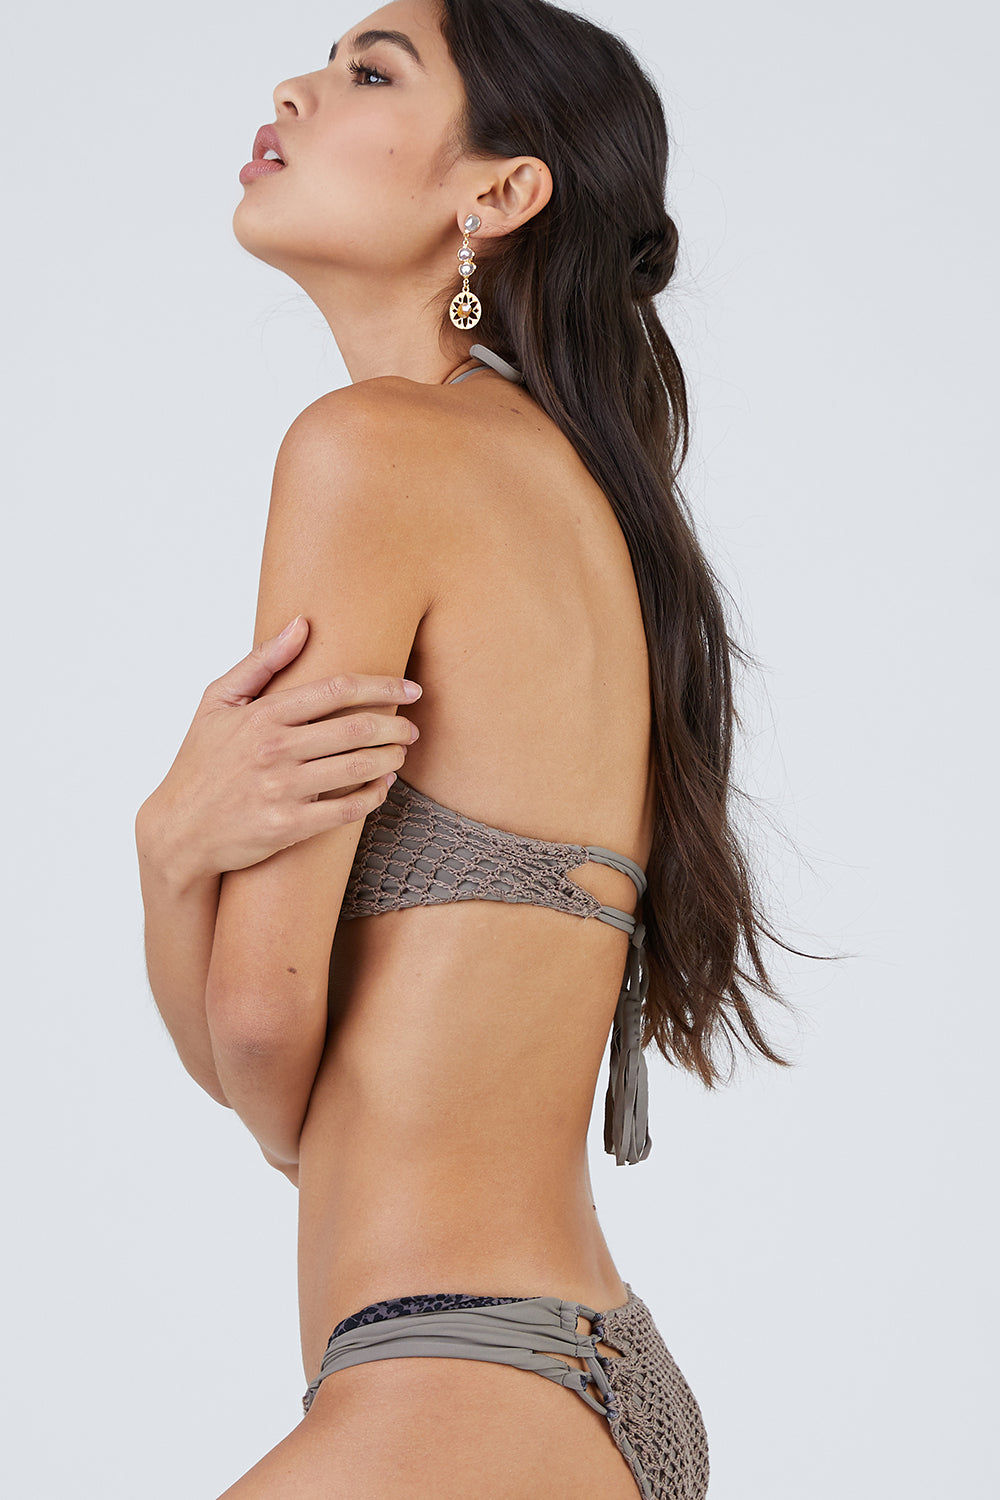 ACACIA Papio Cheeky Crochet Bikini Bottom - Cement Grey Bikini Bottom   Cement Grey  Acacia Papio Crochet Cheeky Bikini Bottom - Cement Back View   Smooth Wide Straps Lacing Side Detail Crochet Overlay Front & Back  Cheeky - Moderate Coverage  Side View